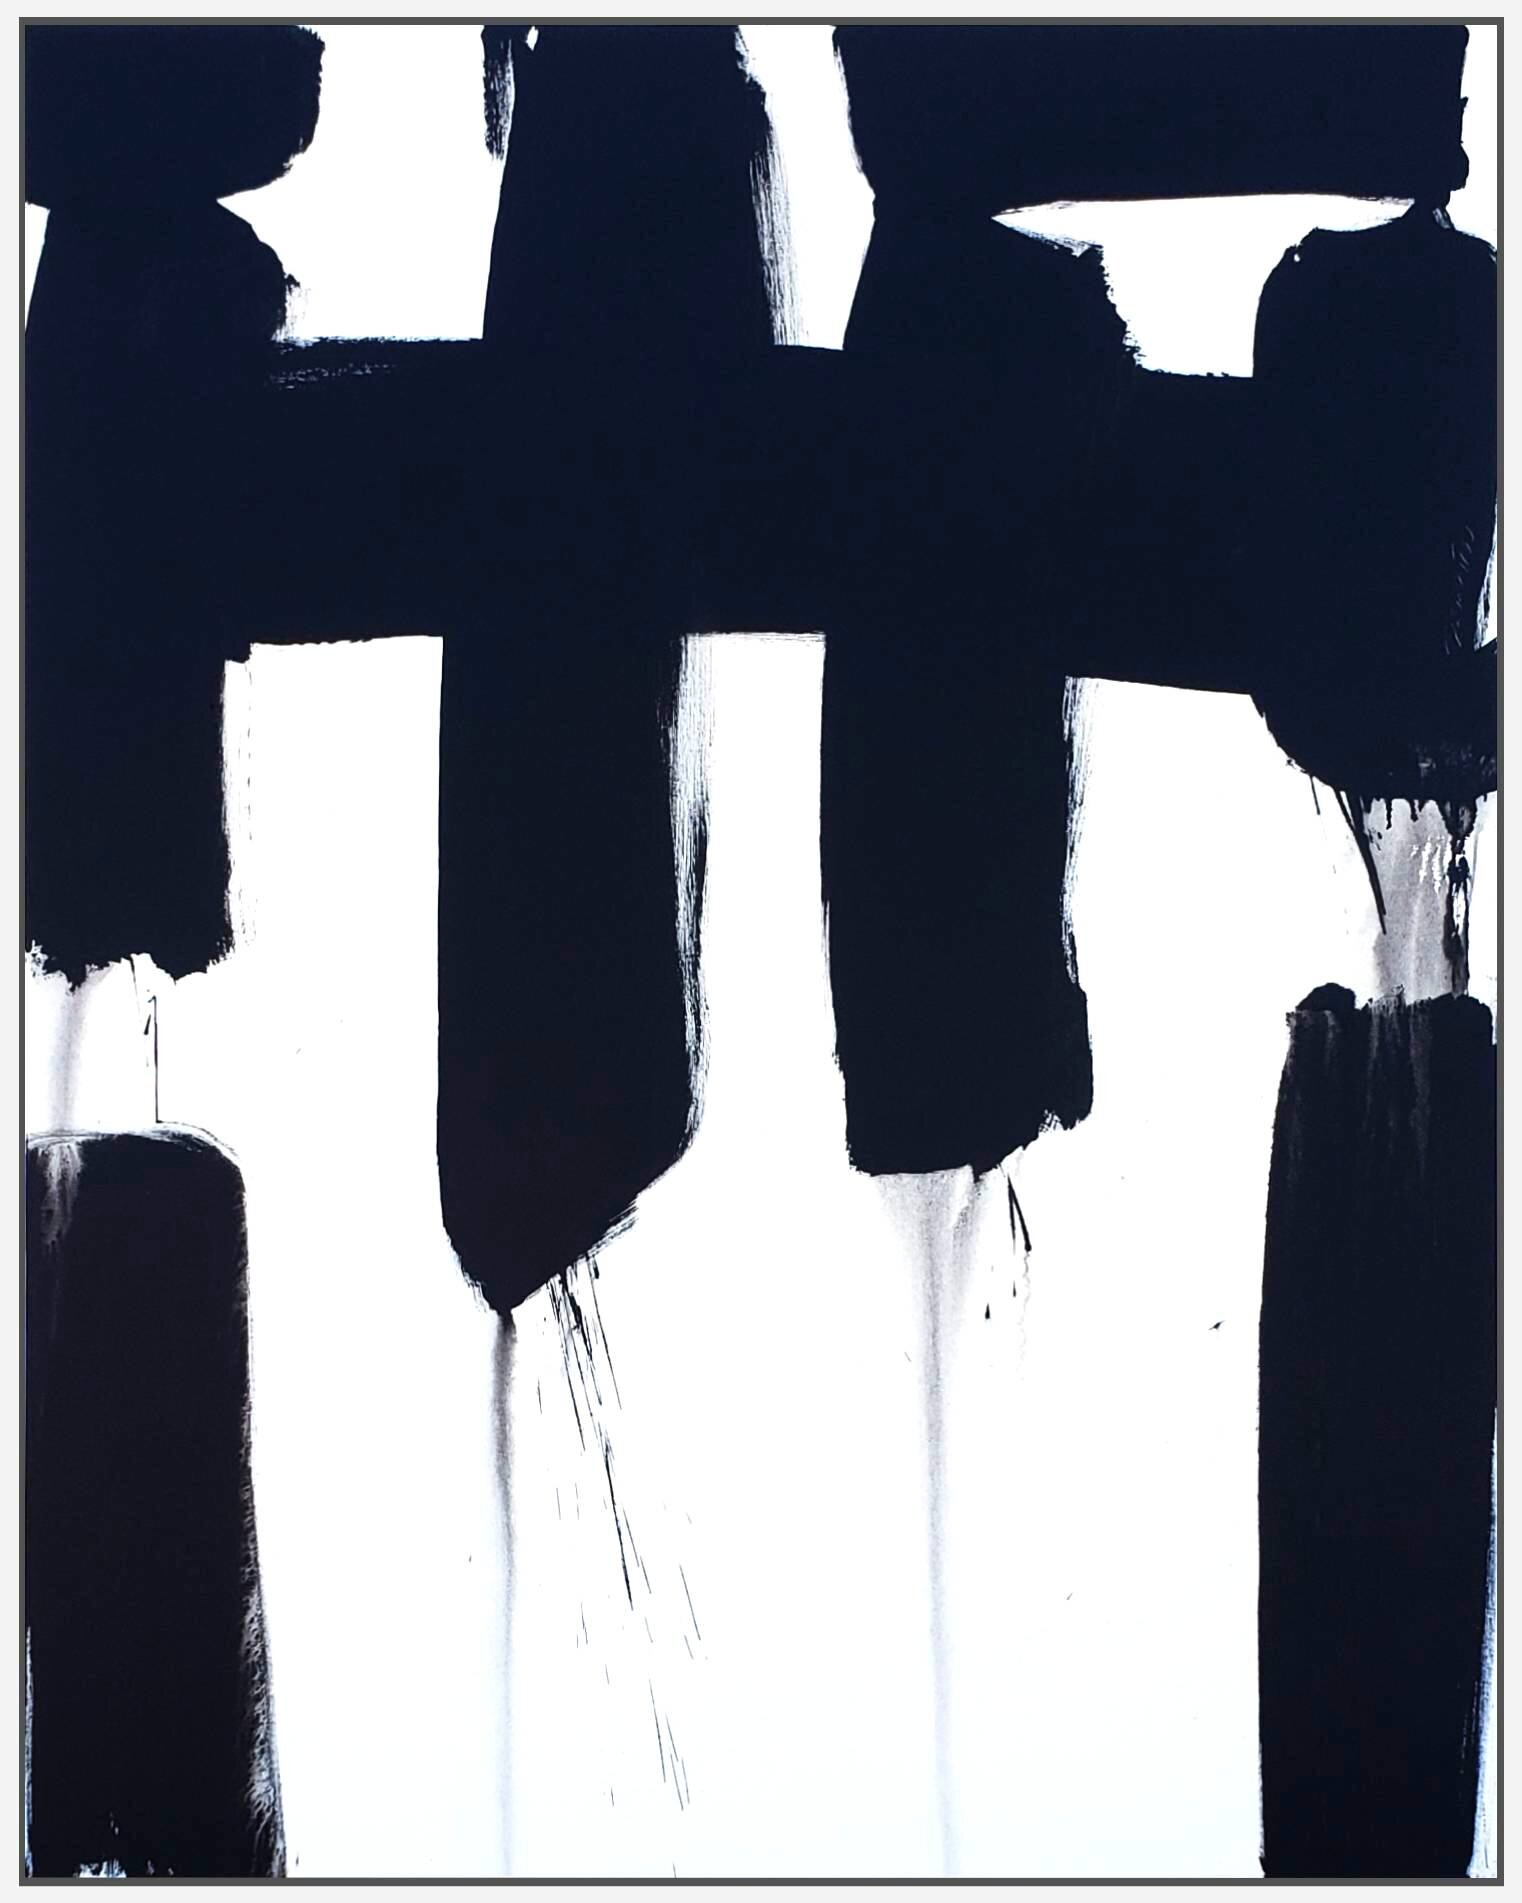 "Black and White #88, 2019, acrylic on canvas, 60"" x 48"" (152.4 x 122cm)"